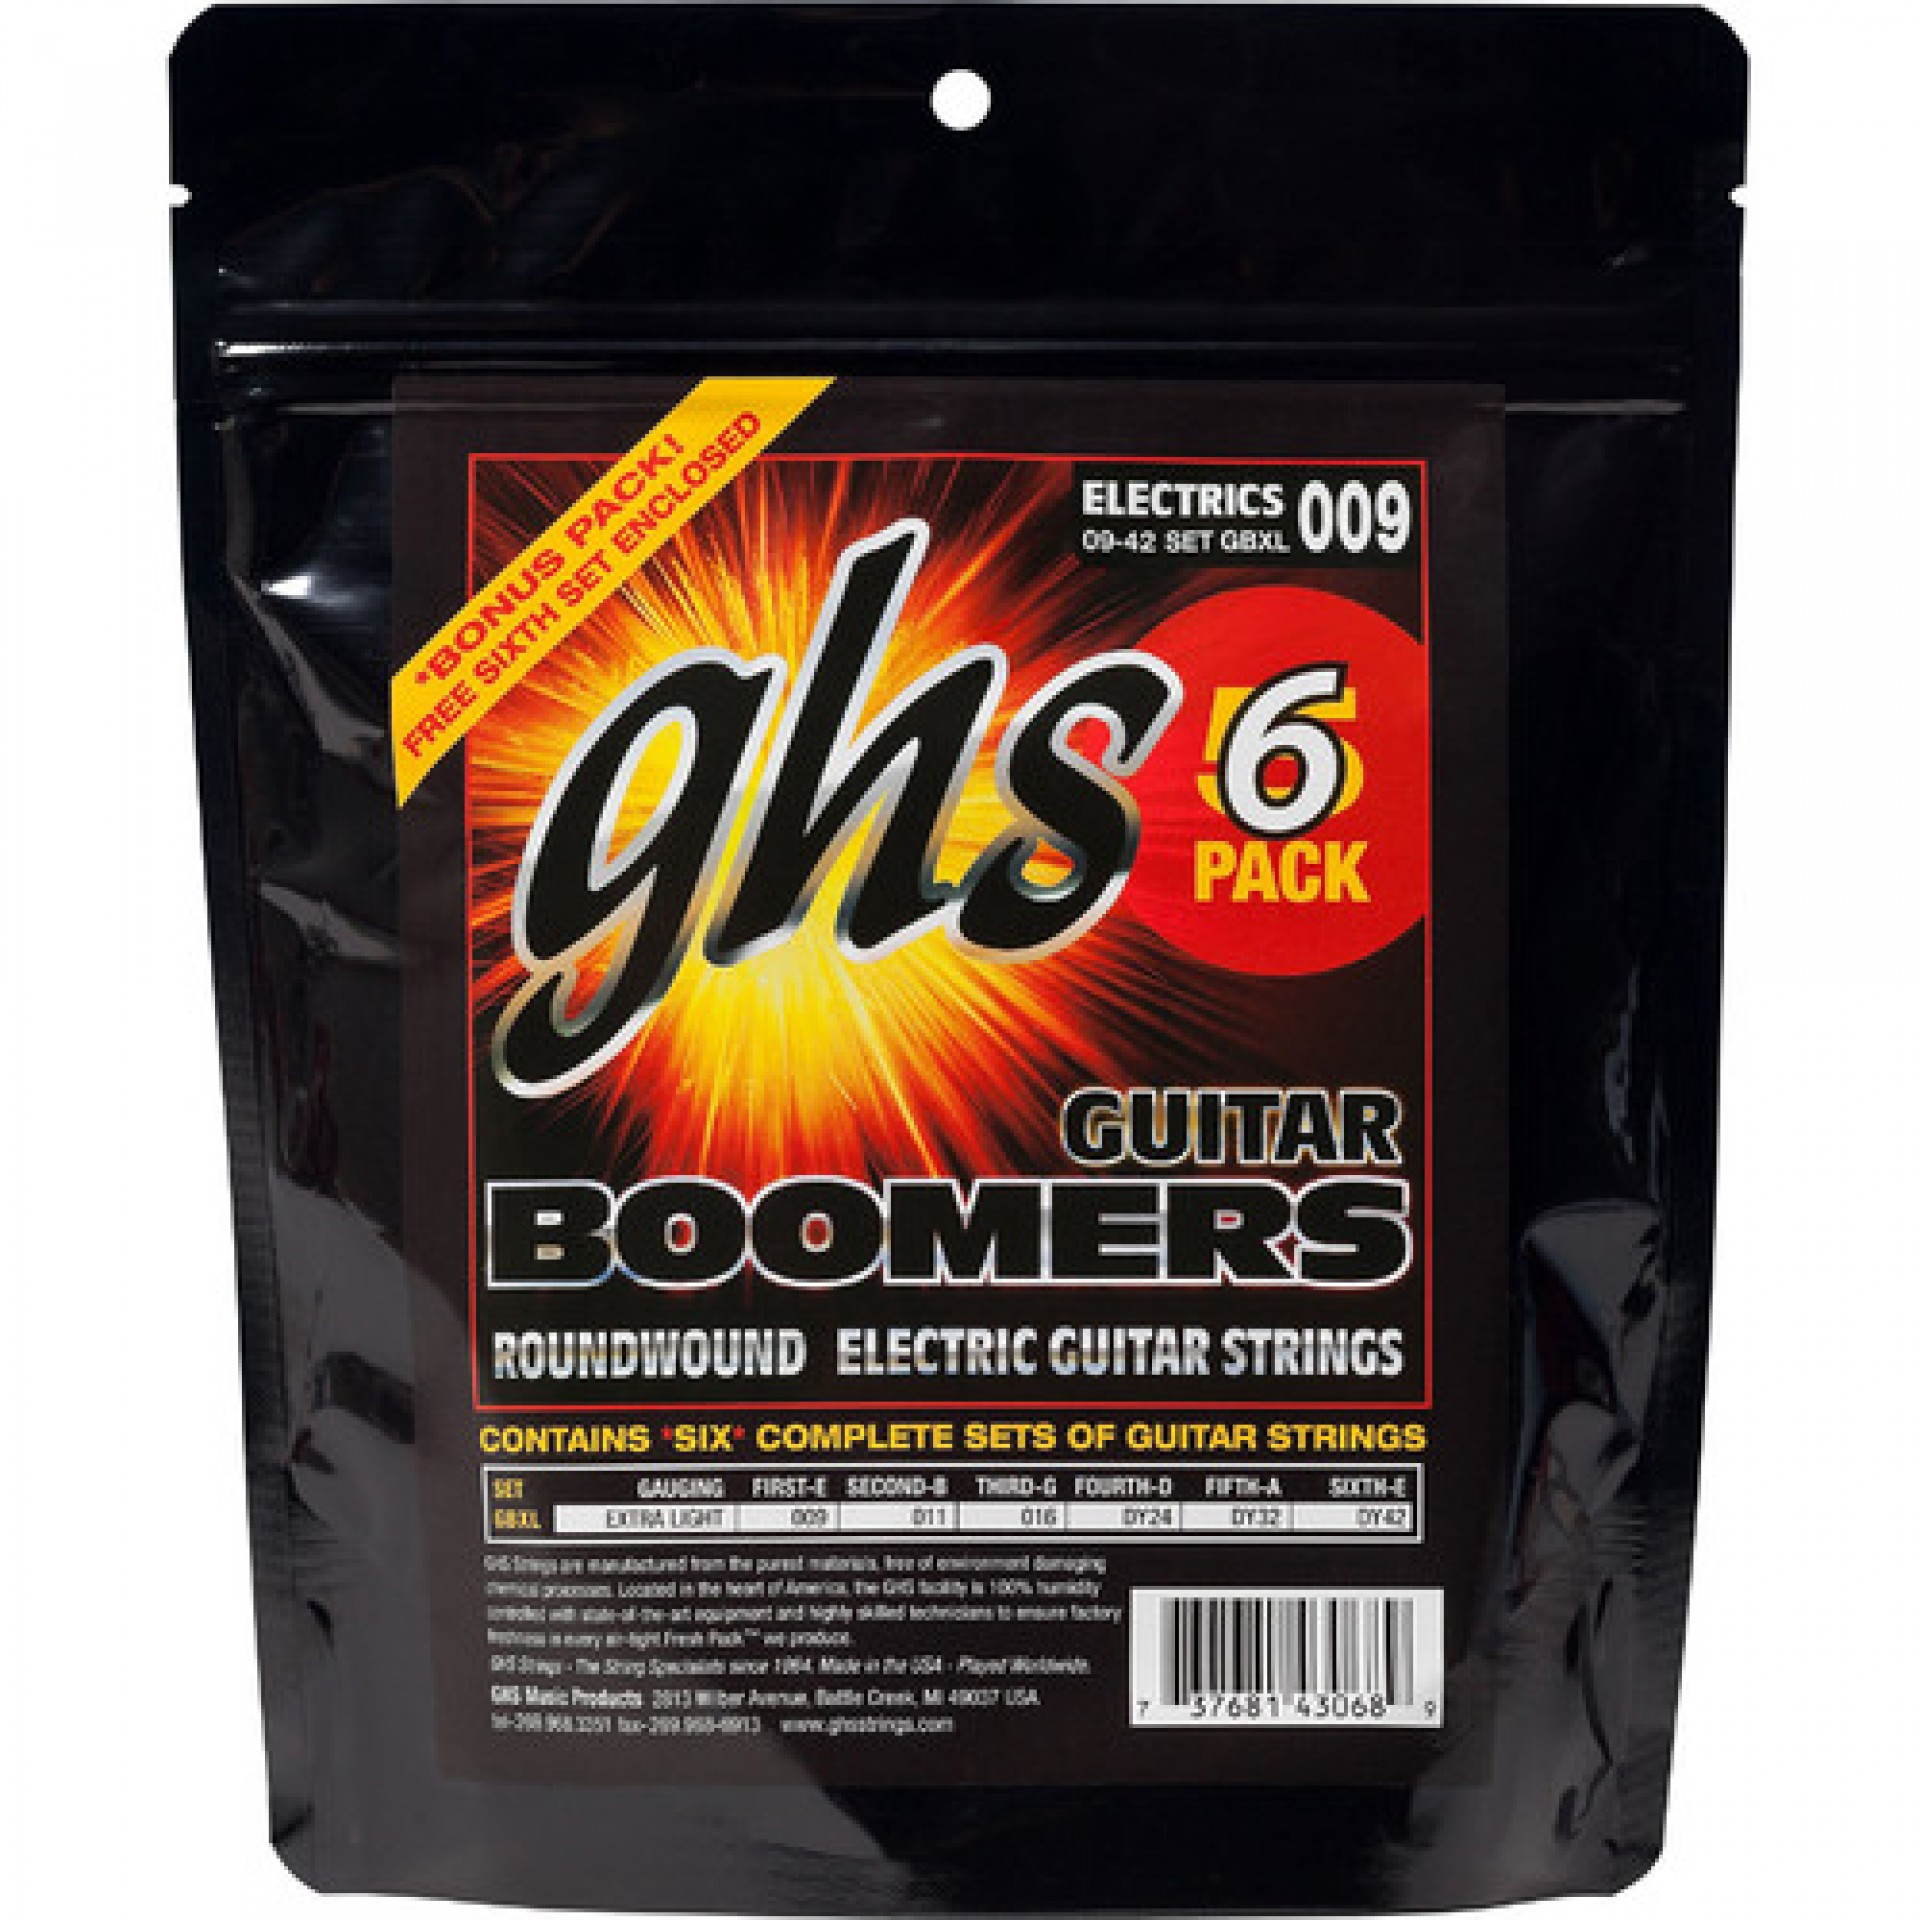 GHS GBXL-5 Extra Light Boomers Multi-Pack Roundwound Electric Guitar Strings (6-String Set, 9 - 42, 6-Pack)